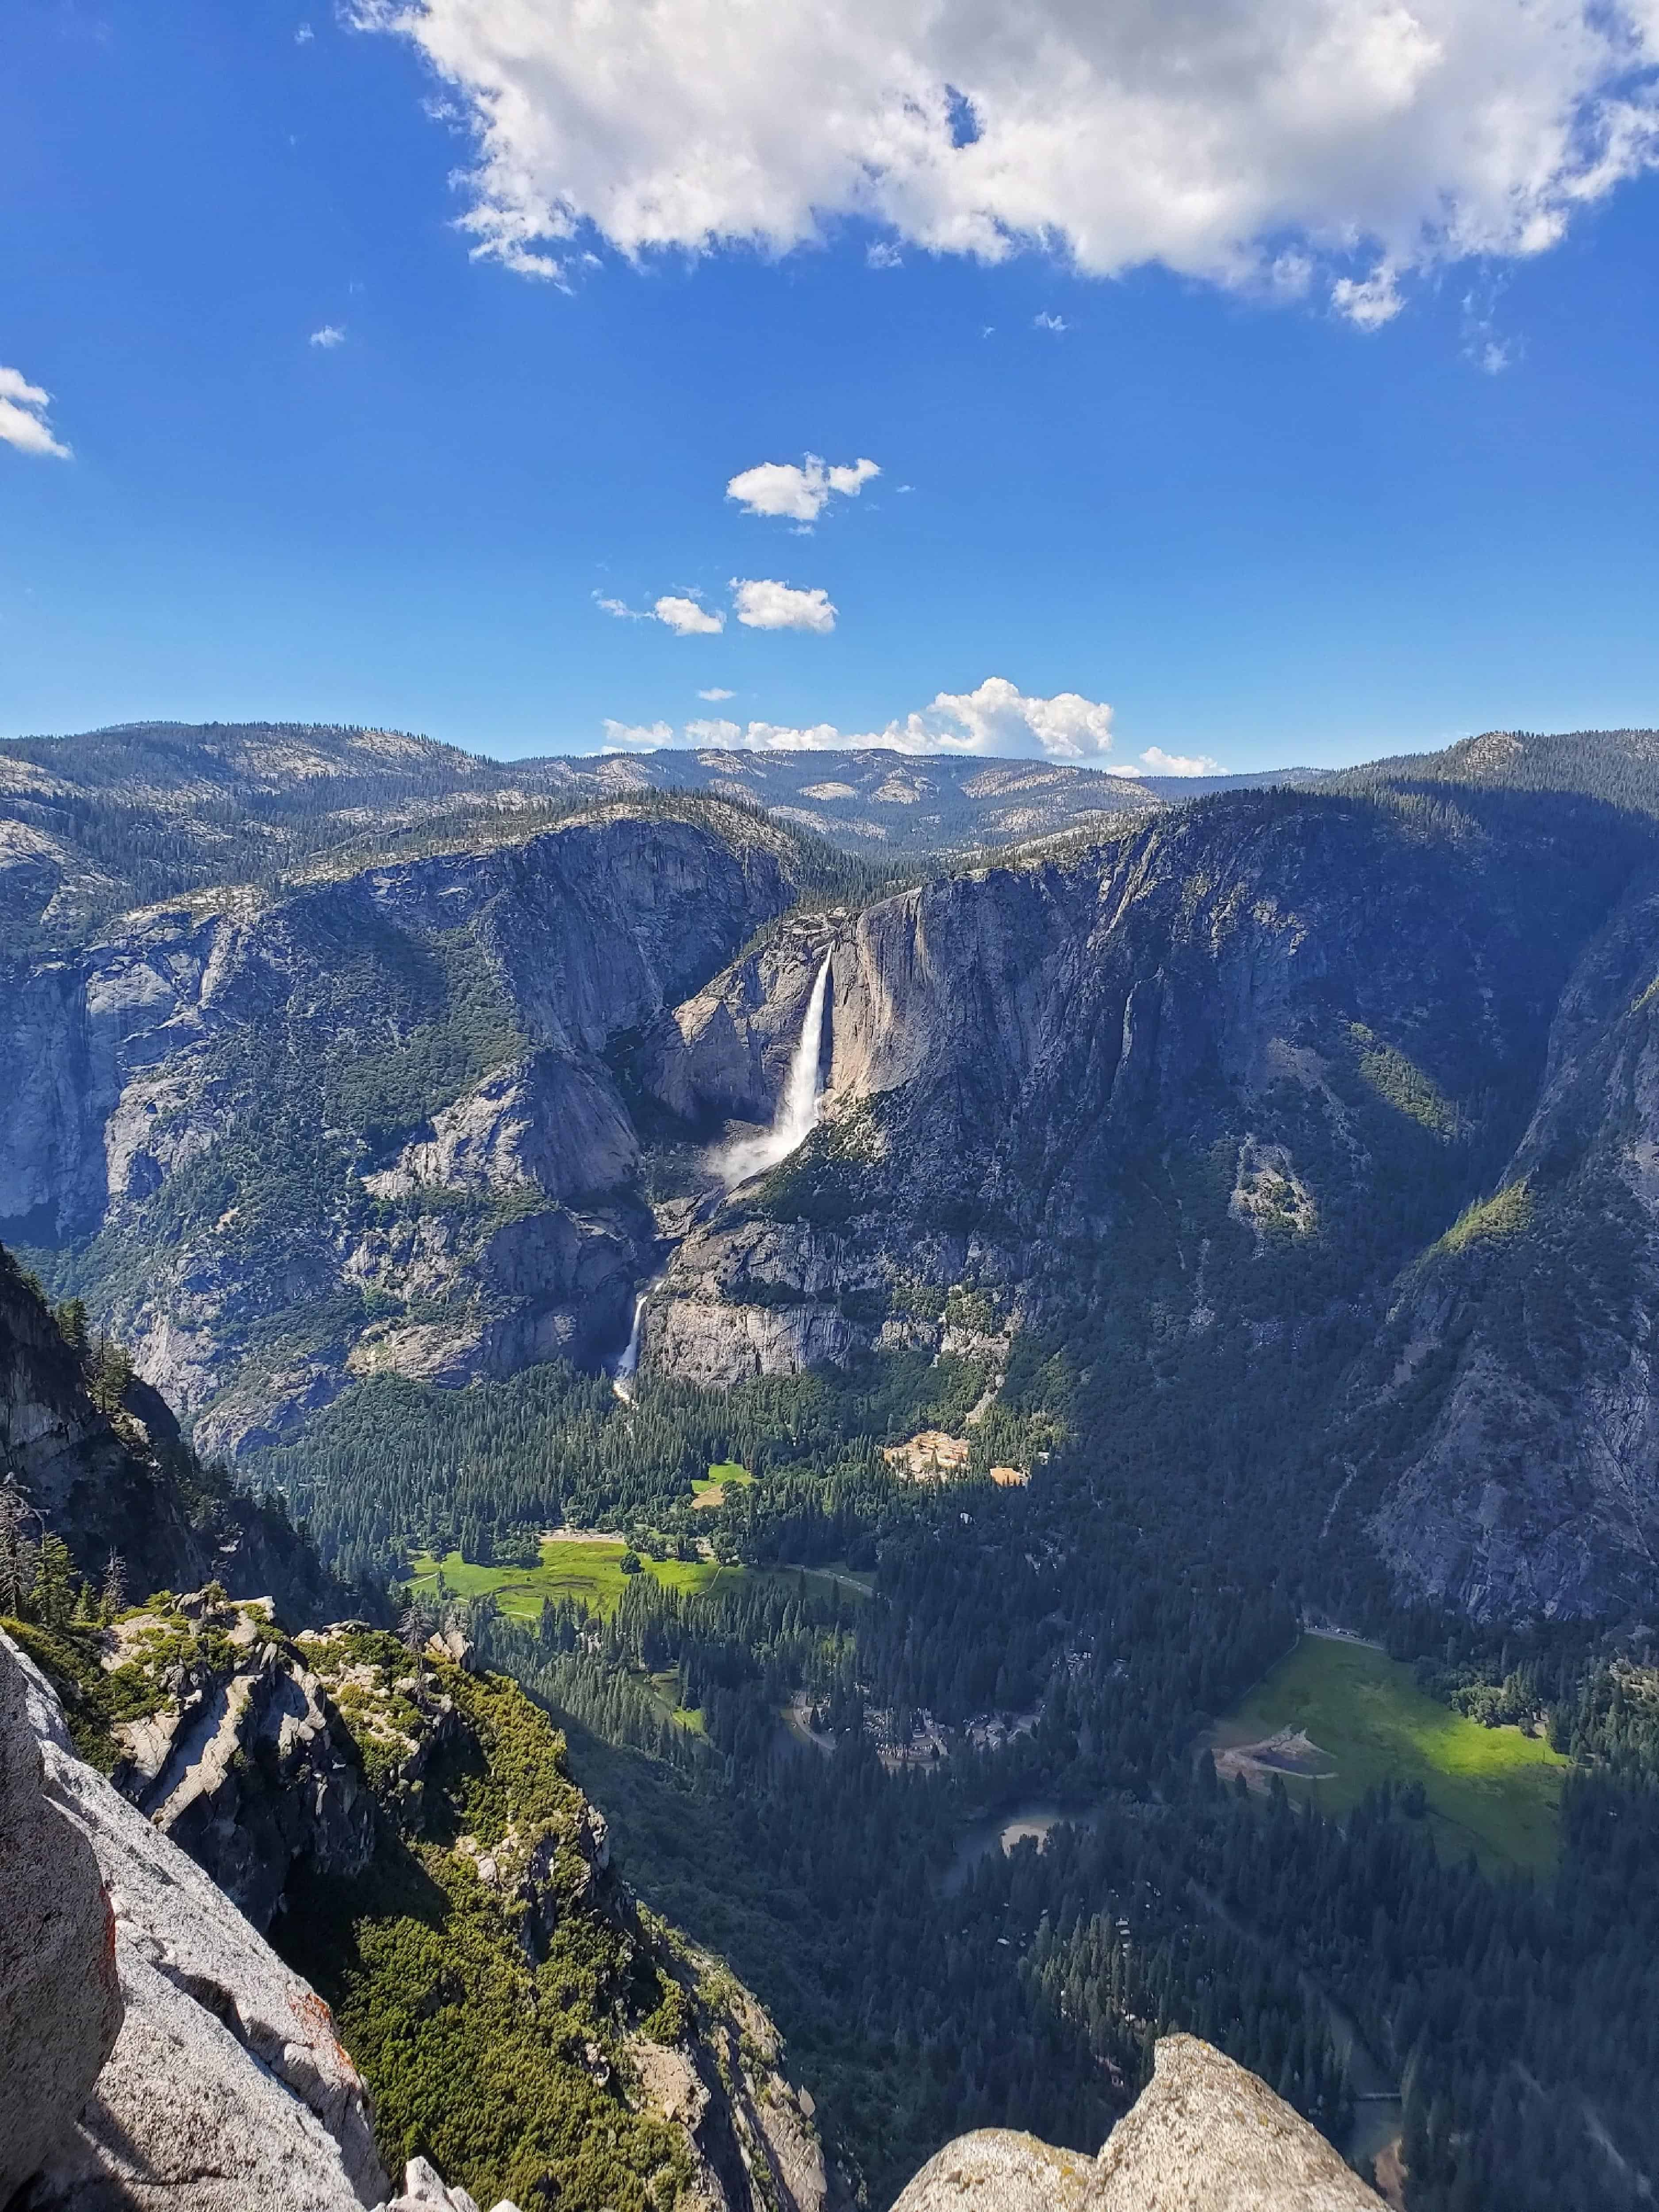 Stunning Views of Yosemite Falls Afforded by Glacier Point Lookout